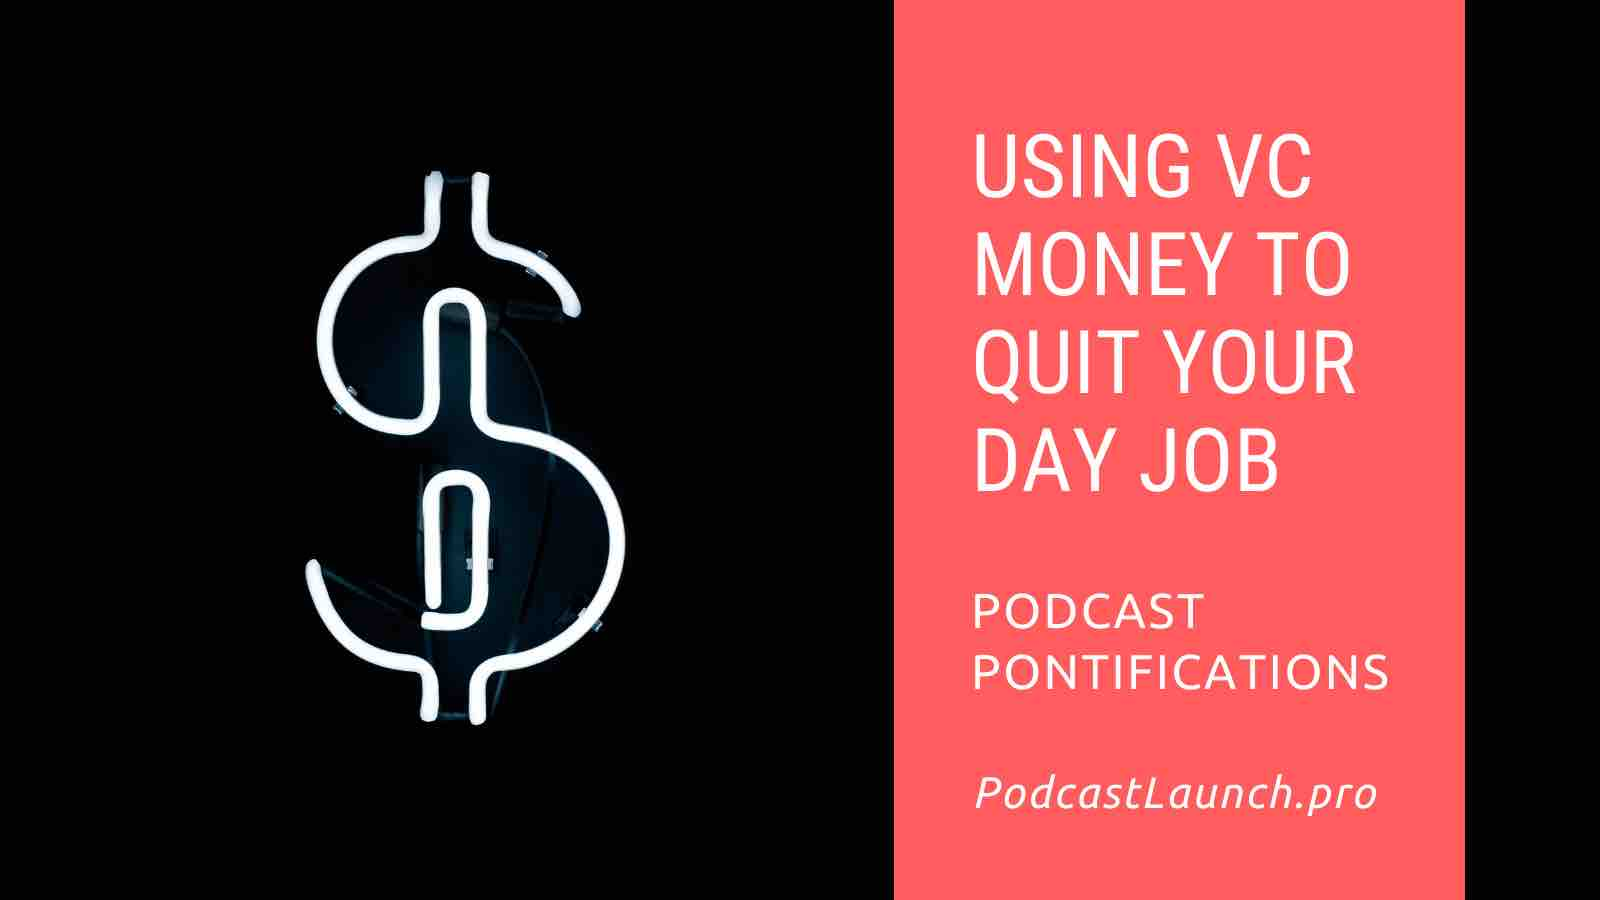 Podcasters Using VC Money To Quit Their Day Job